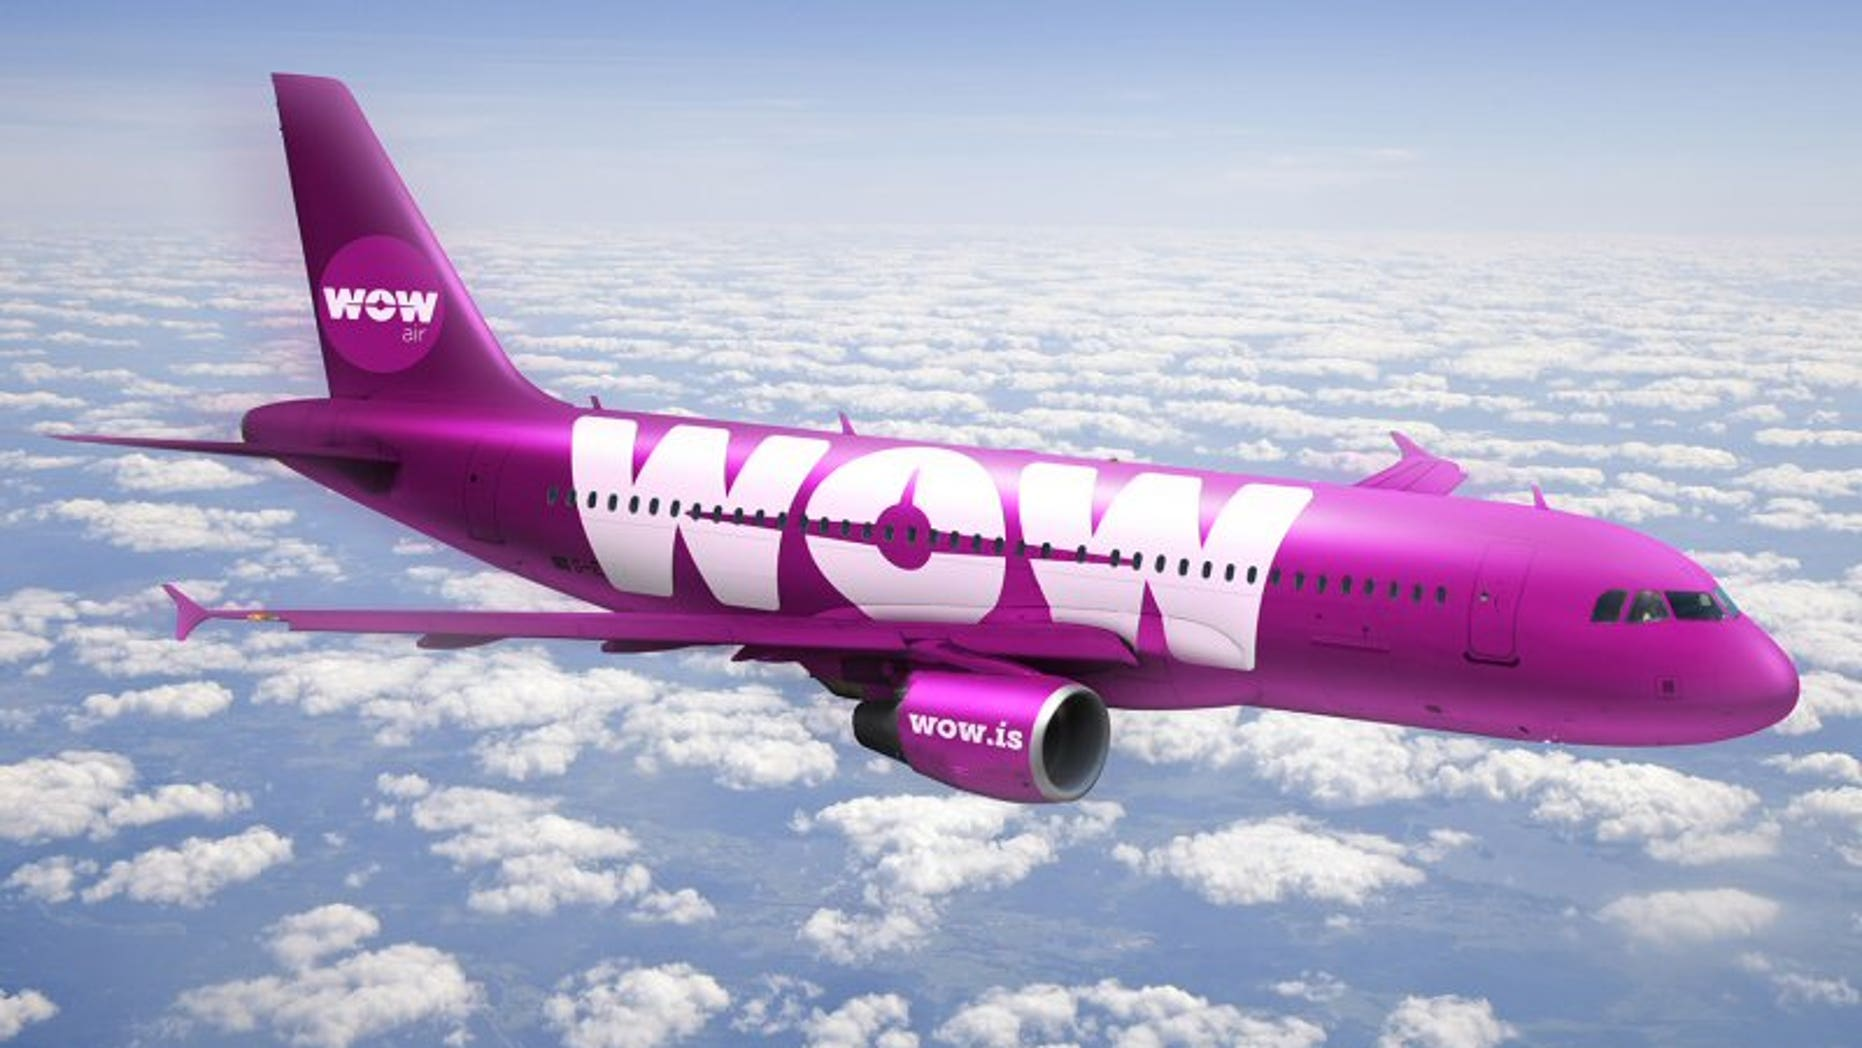 Icelandic low-cost carrier WOW Air launched in 2011 and is set to offer some of the cheapest flights to Europe ever.